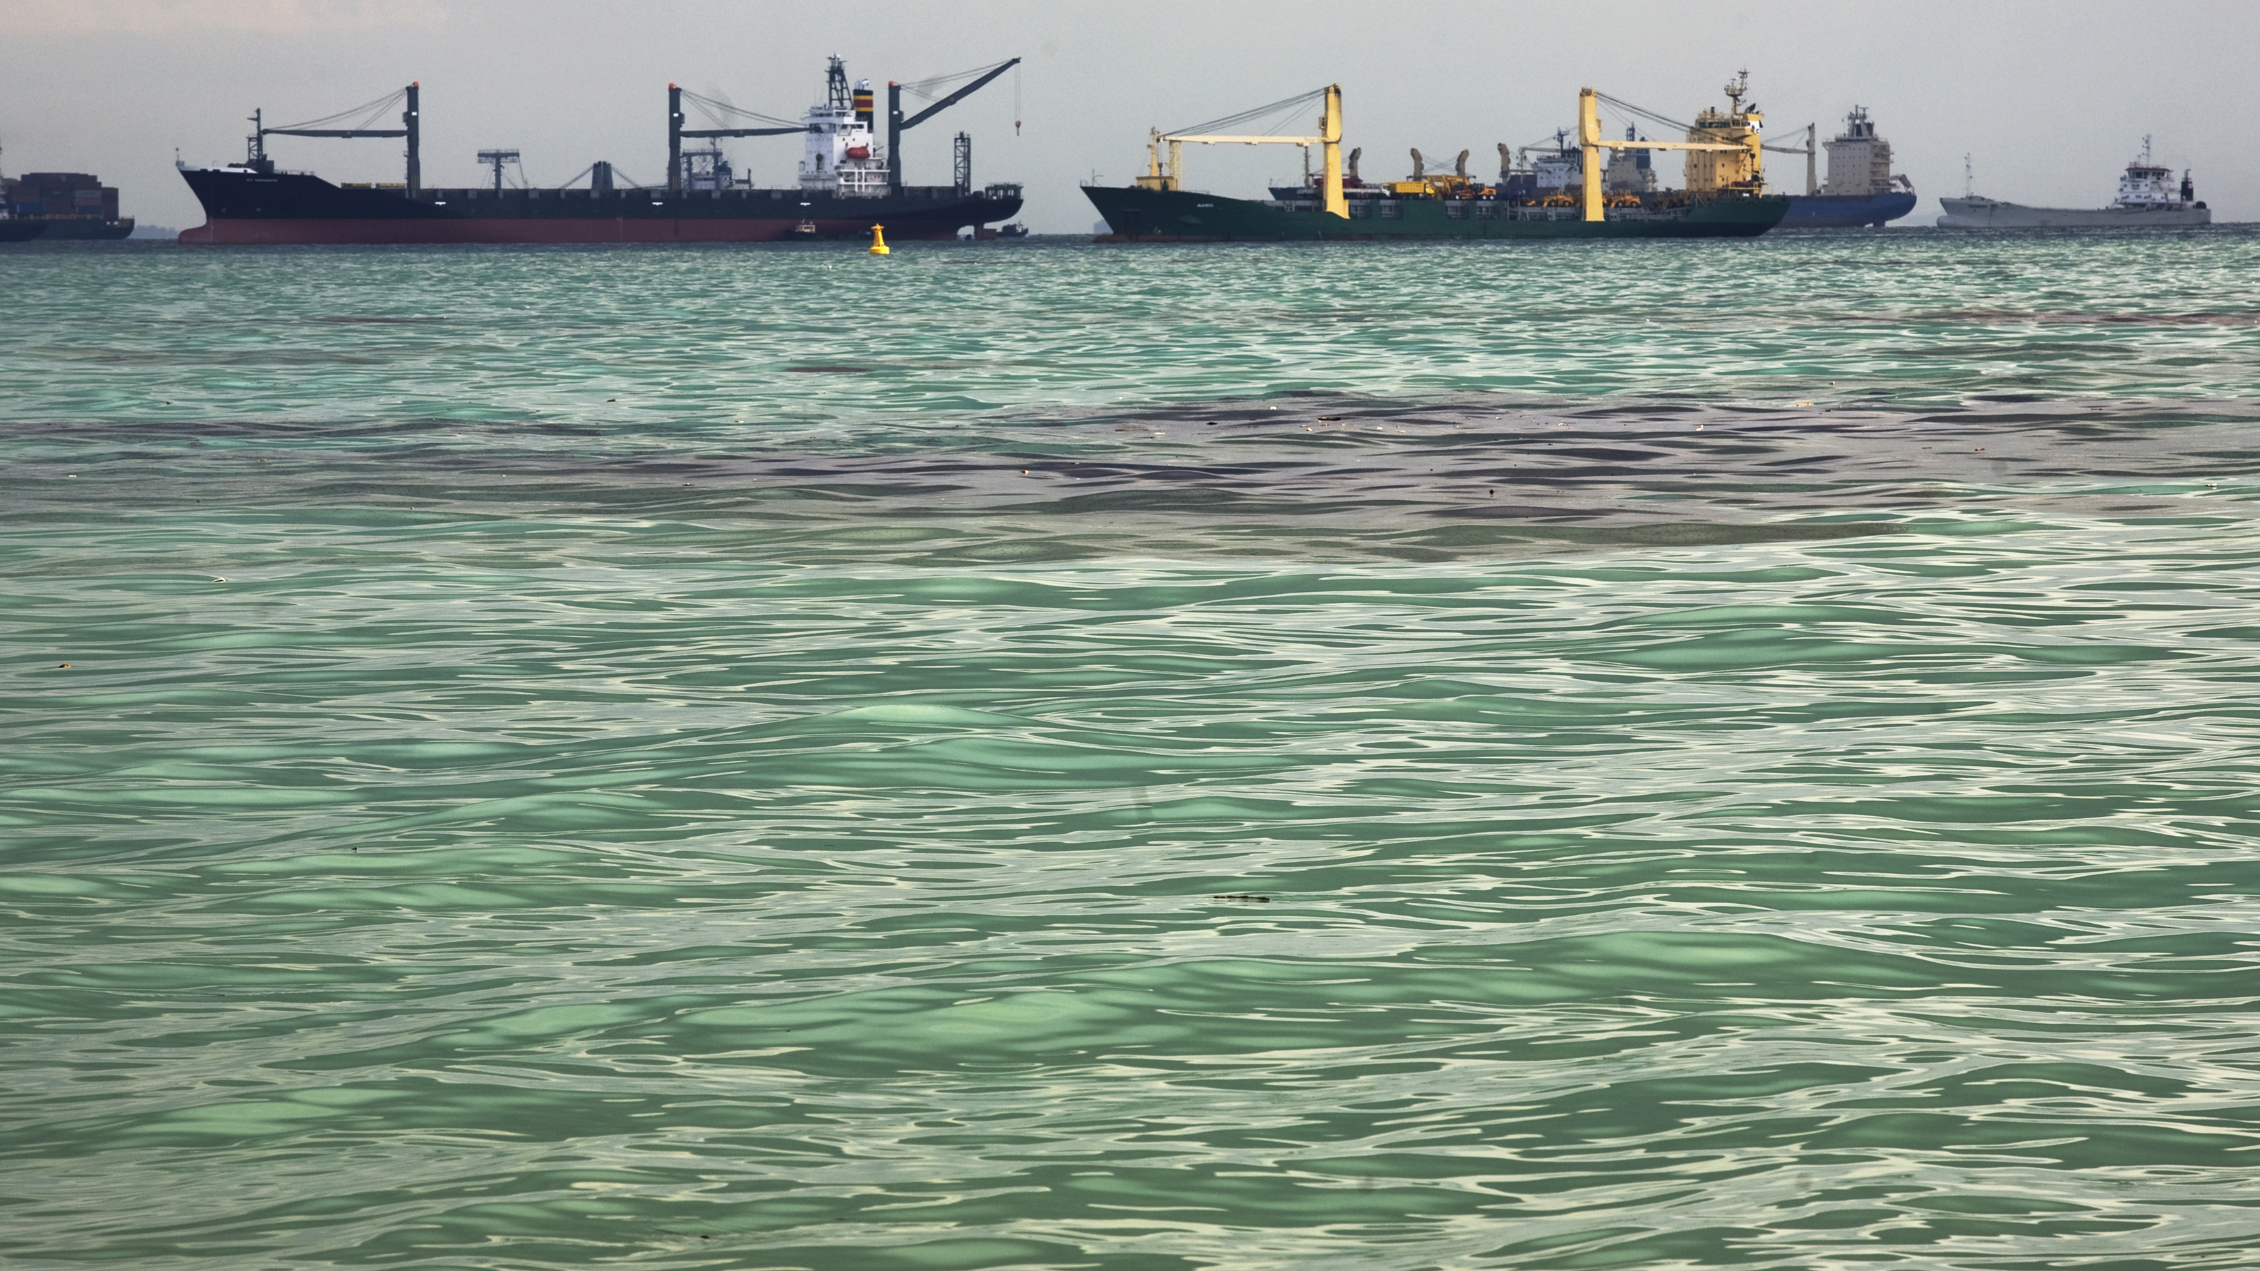 Ships and oil are seen off the beach at East Coast Park just east of the playground at Big Splash Water Park in Singapore May 27, 2010. Singapore closed most of its eastern beaches due to the oil spilt in nearby waters following a collision between a tanker and a bulk carrier earlier this week, the environmental agency said on Thursday. The oil slick affected a stretch of more than 7 kilometres (4.4 miles) of eastern Singapore, which include beaches, rock bunds and popular recreational and sailing areas, the National Environmental Agency (NEA) said REUTERS/Drew Fritz